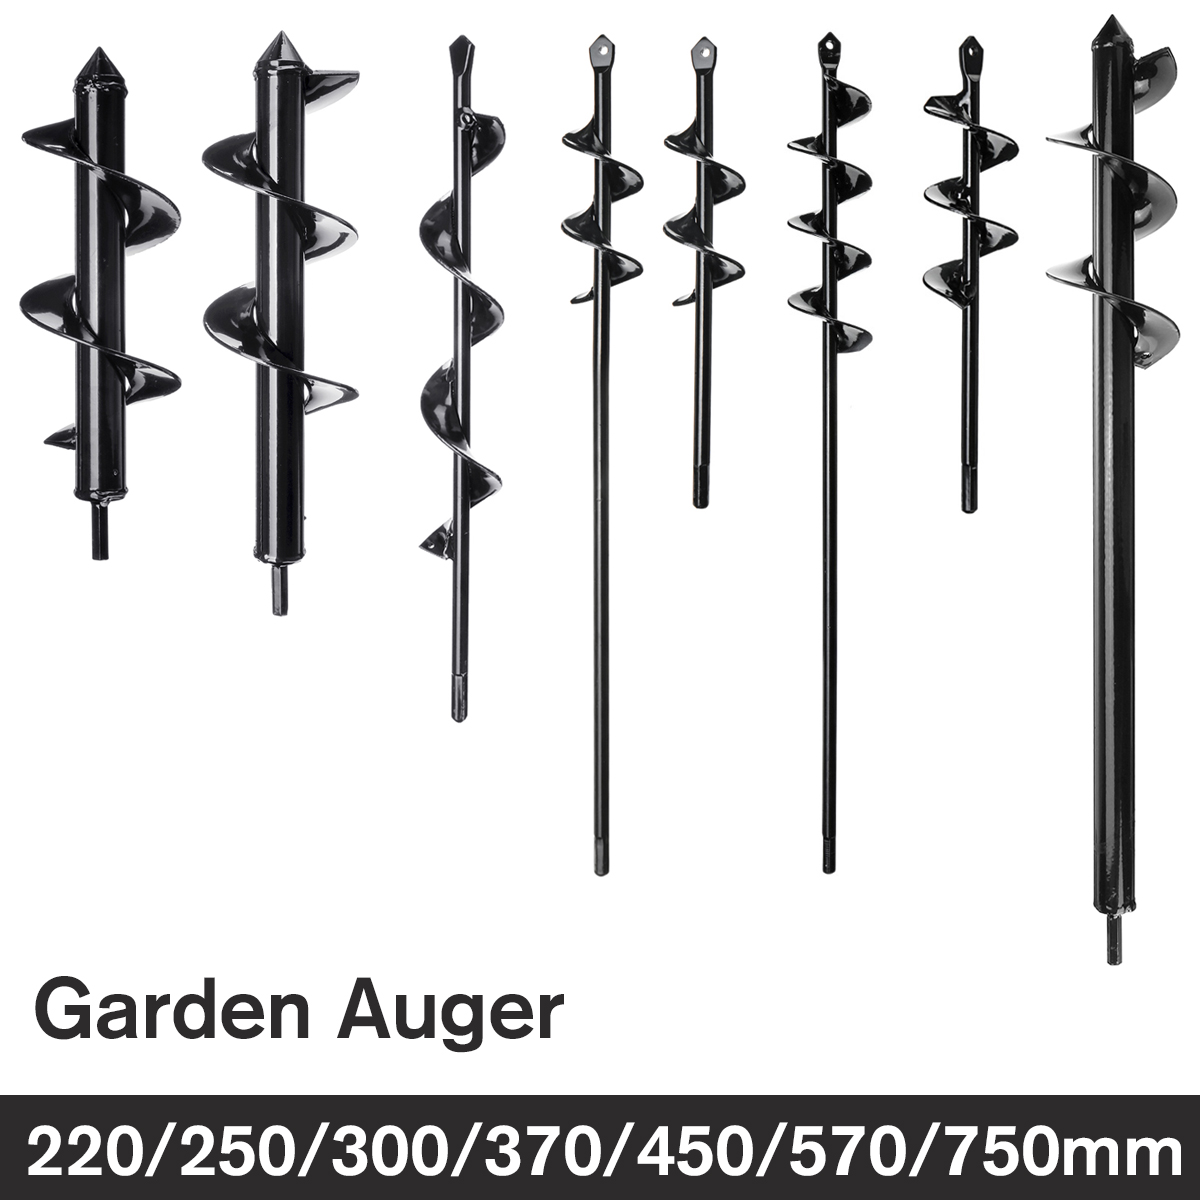 Coat Rack - Earth Auger Hole Digger Tool Garden Planting Machine Drill Bit Fence Borer Post Hole Digger